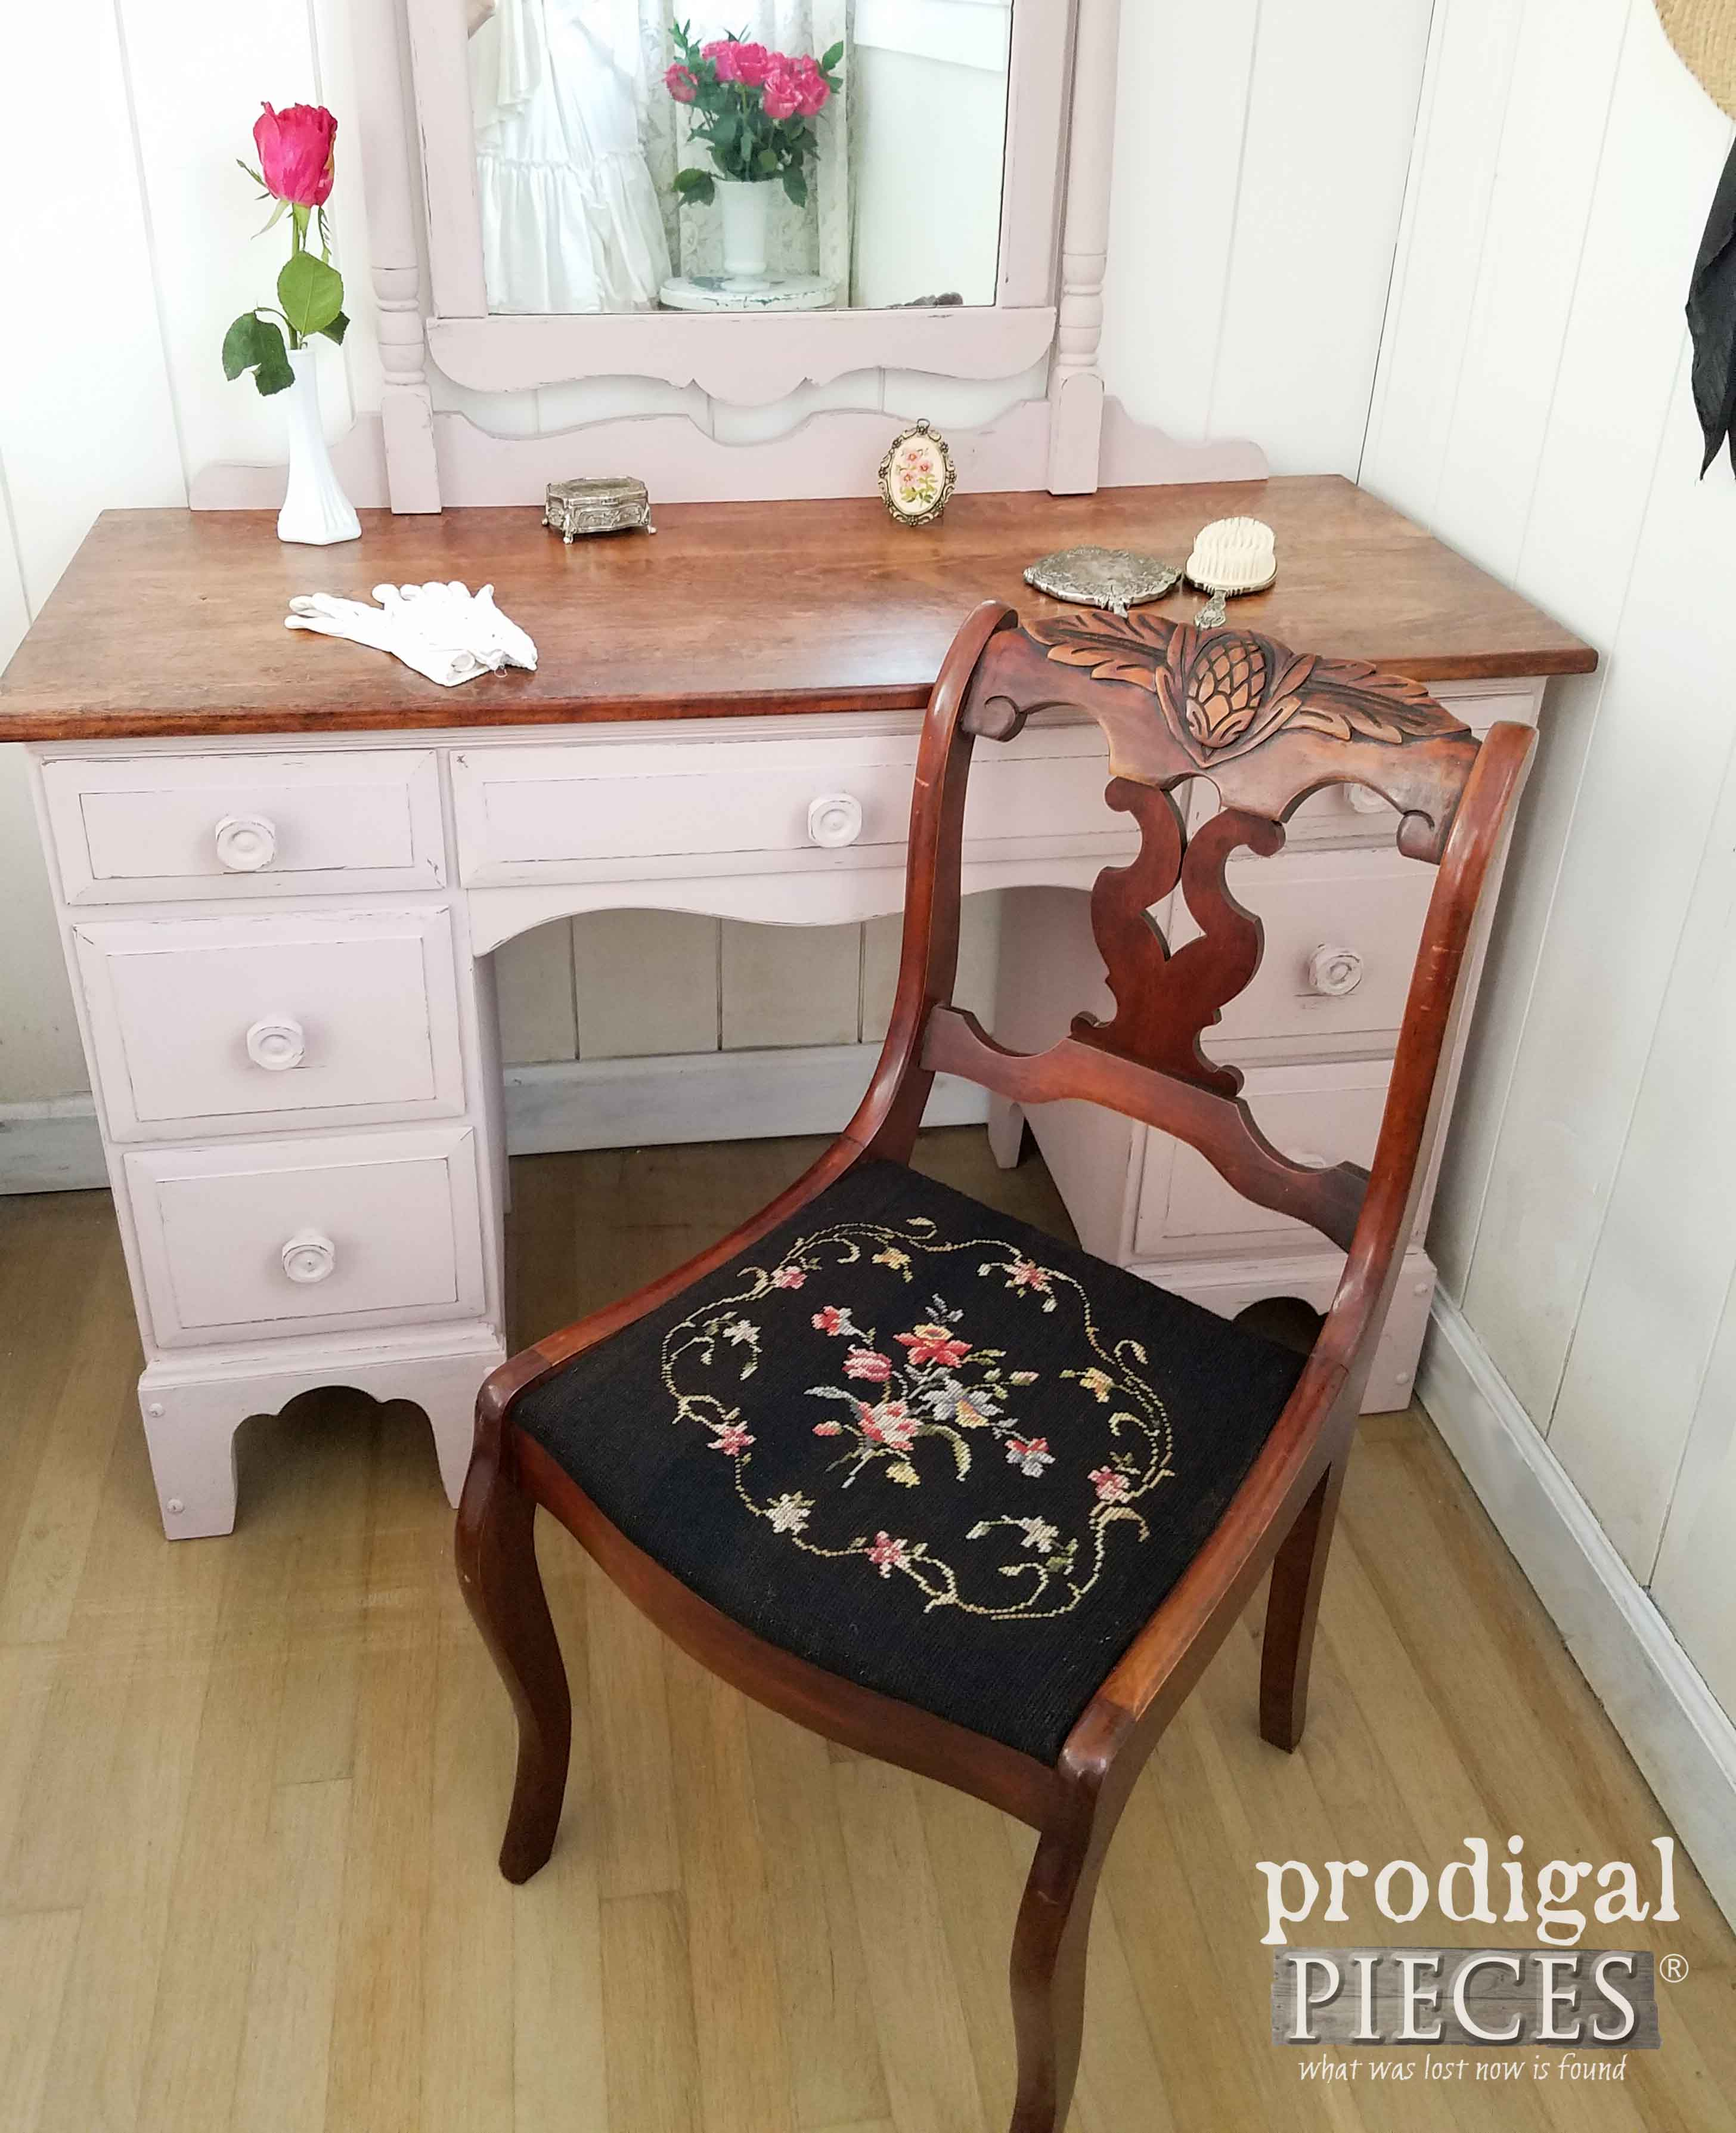 Antique Needlepoint Chair for Vintage Vanity by Prodigal Pieces | prodigalpieces.com